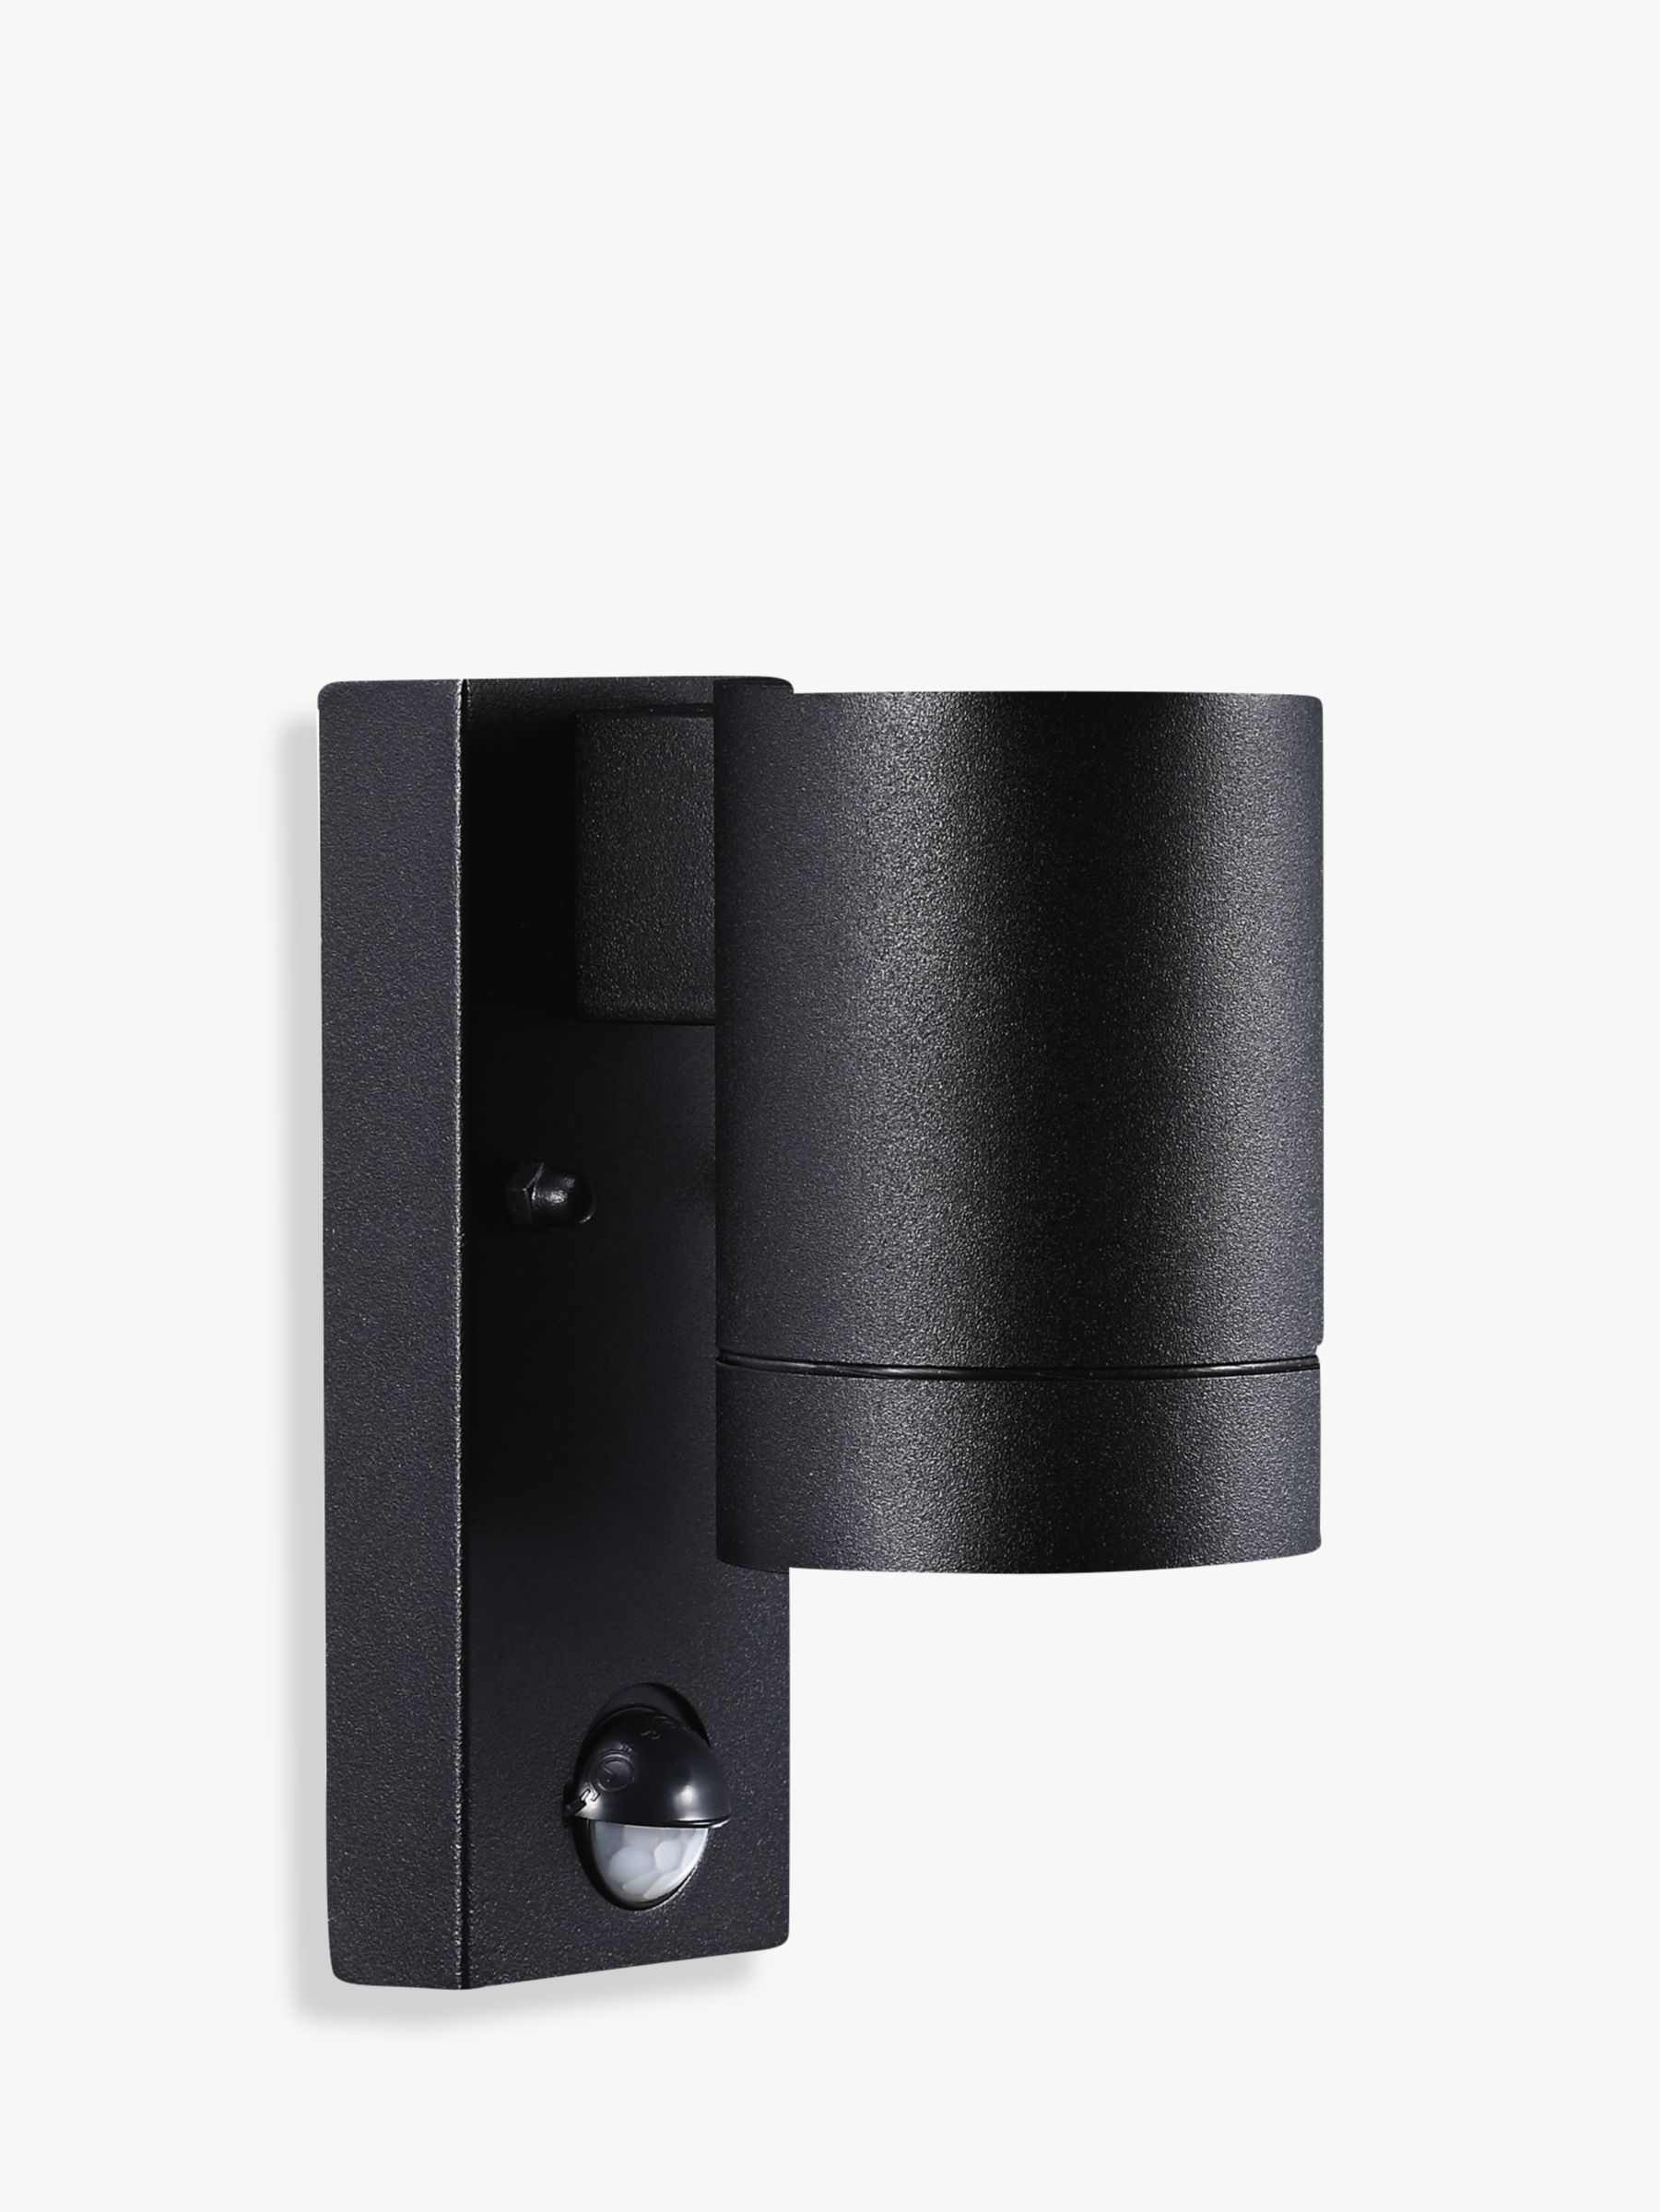 Nordlux Luxembourg Outdoor Wall Light With Pir Sensor Black : Buy Nordlux Tin Maxi PIR Outdoor Sensor Wall Light, Black John Lewis